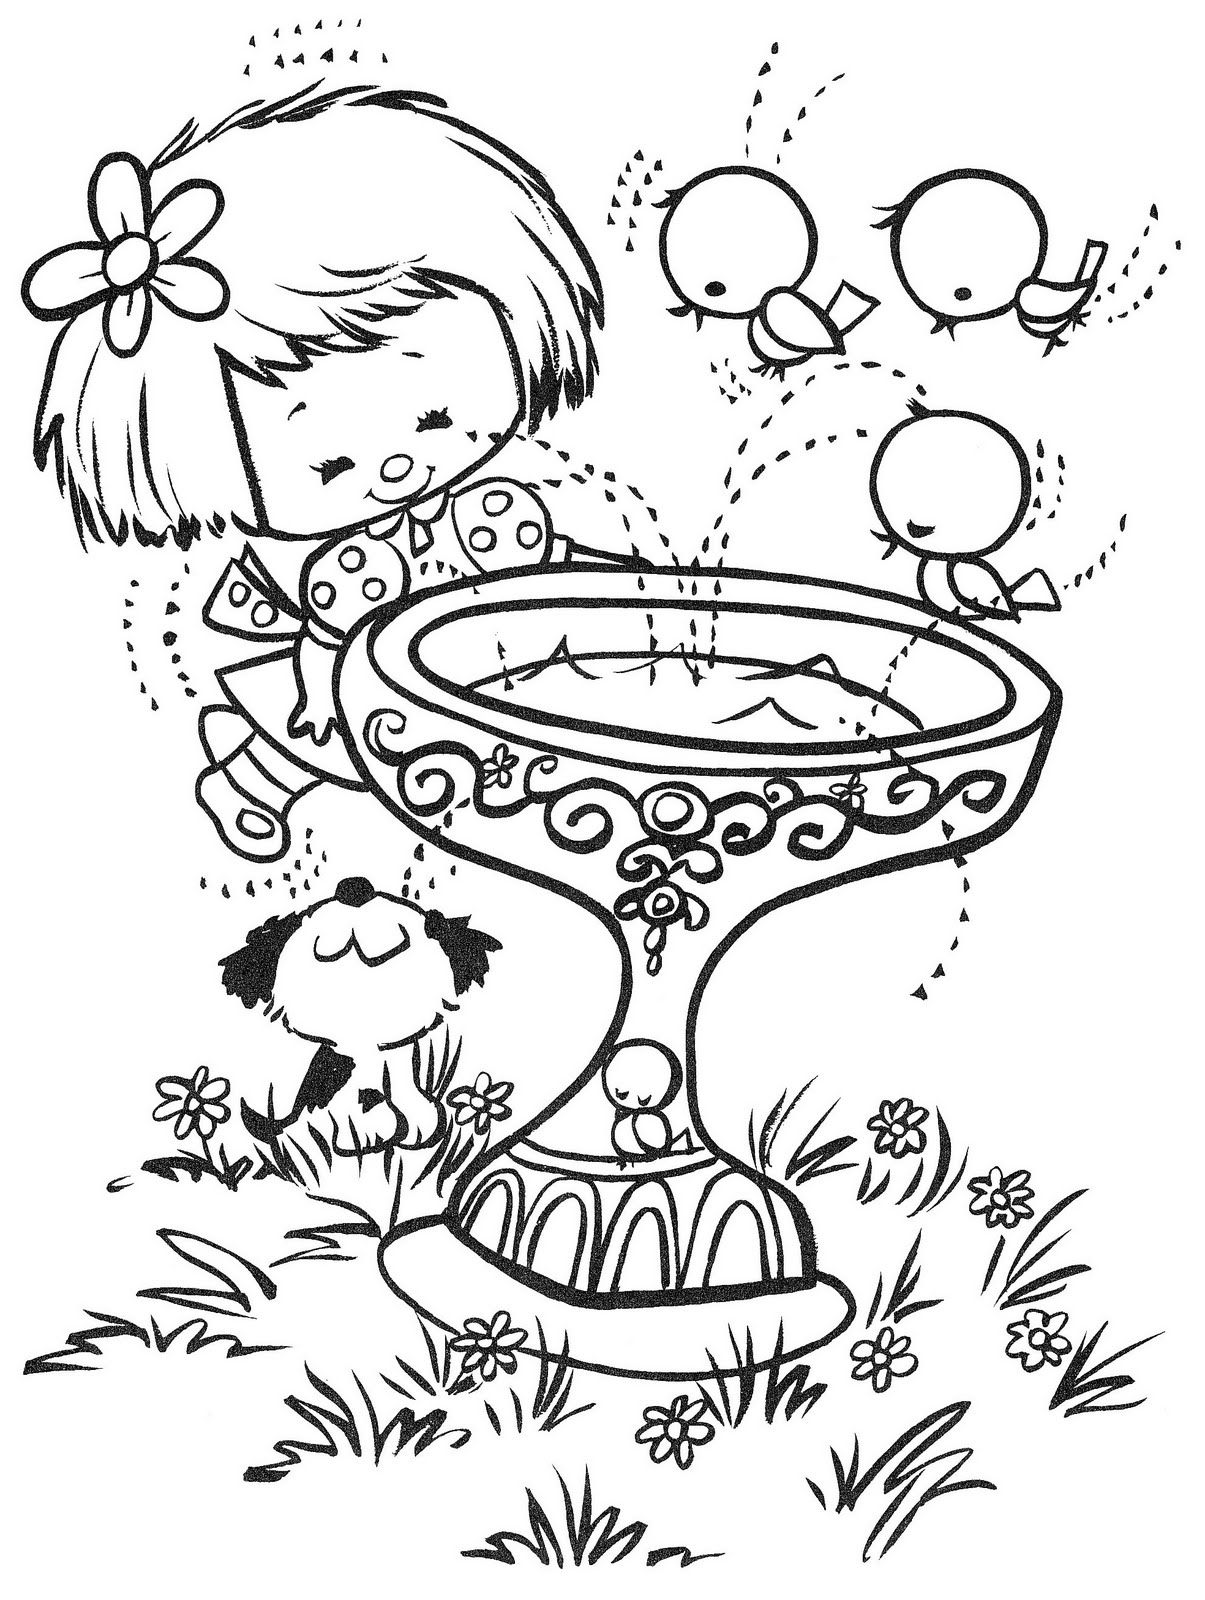 Hoeboes and Redheads Coloring Book   Imprimibles   Pinterest ...